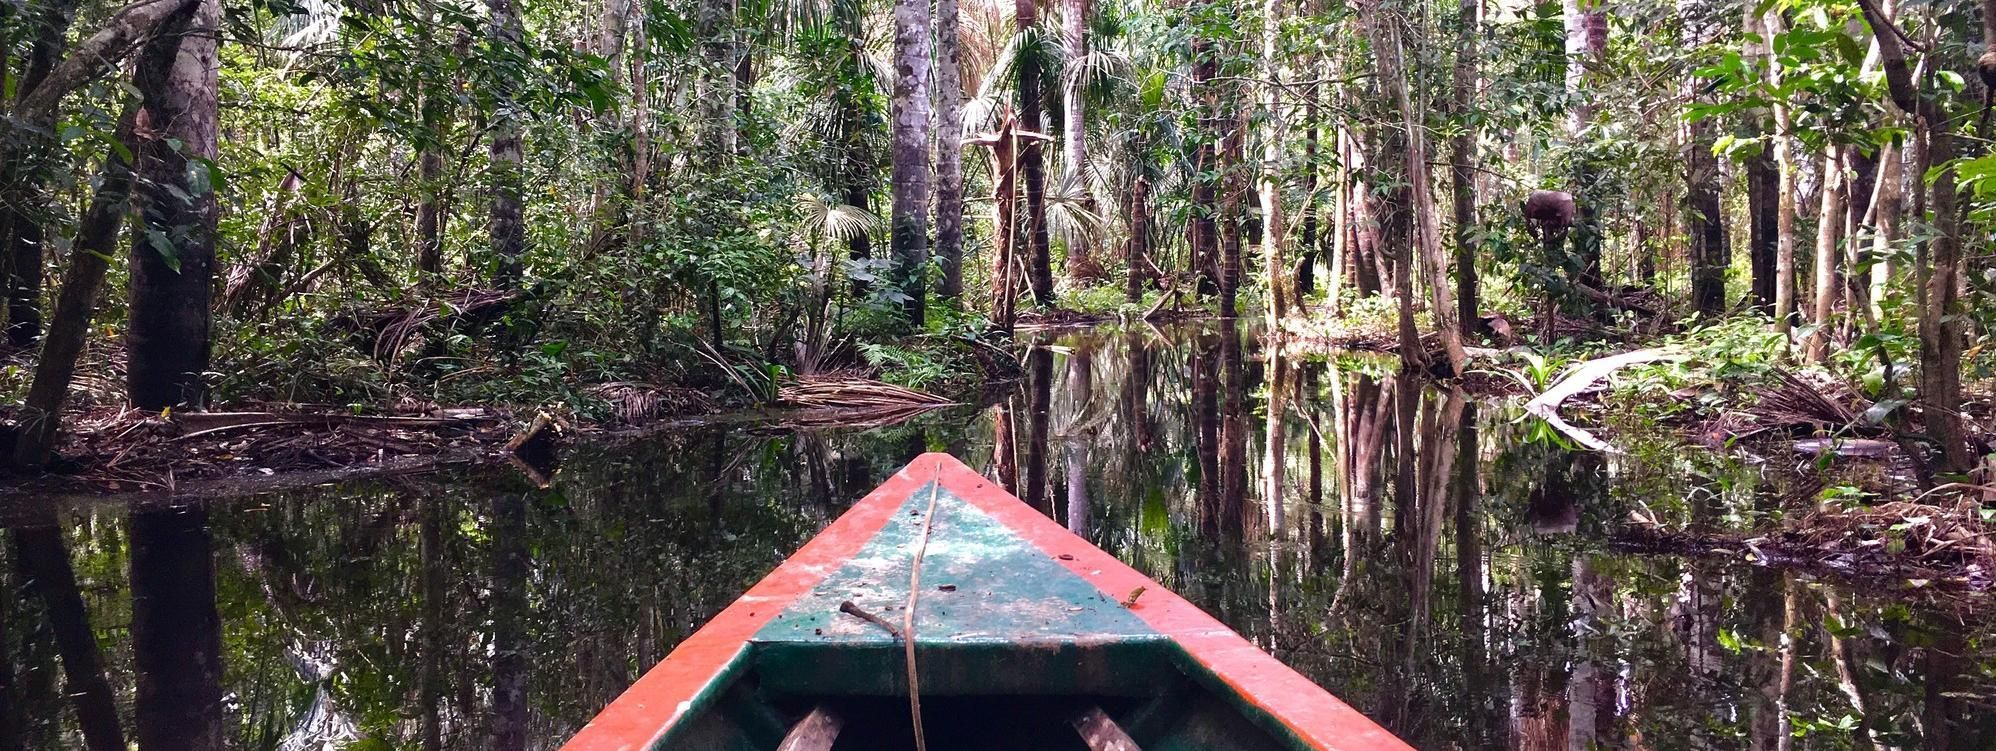 Boat trip in the rainforest